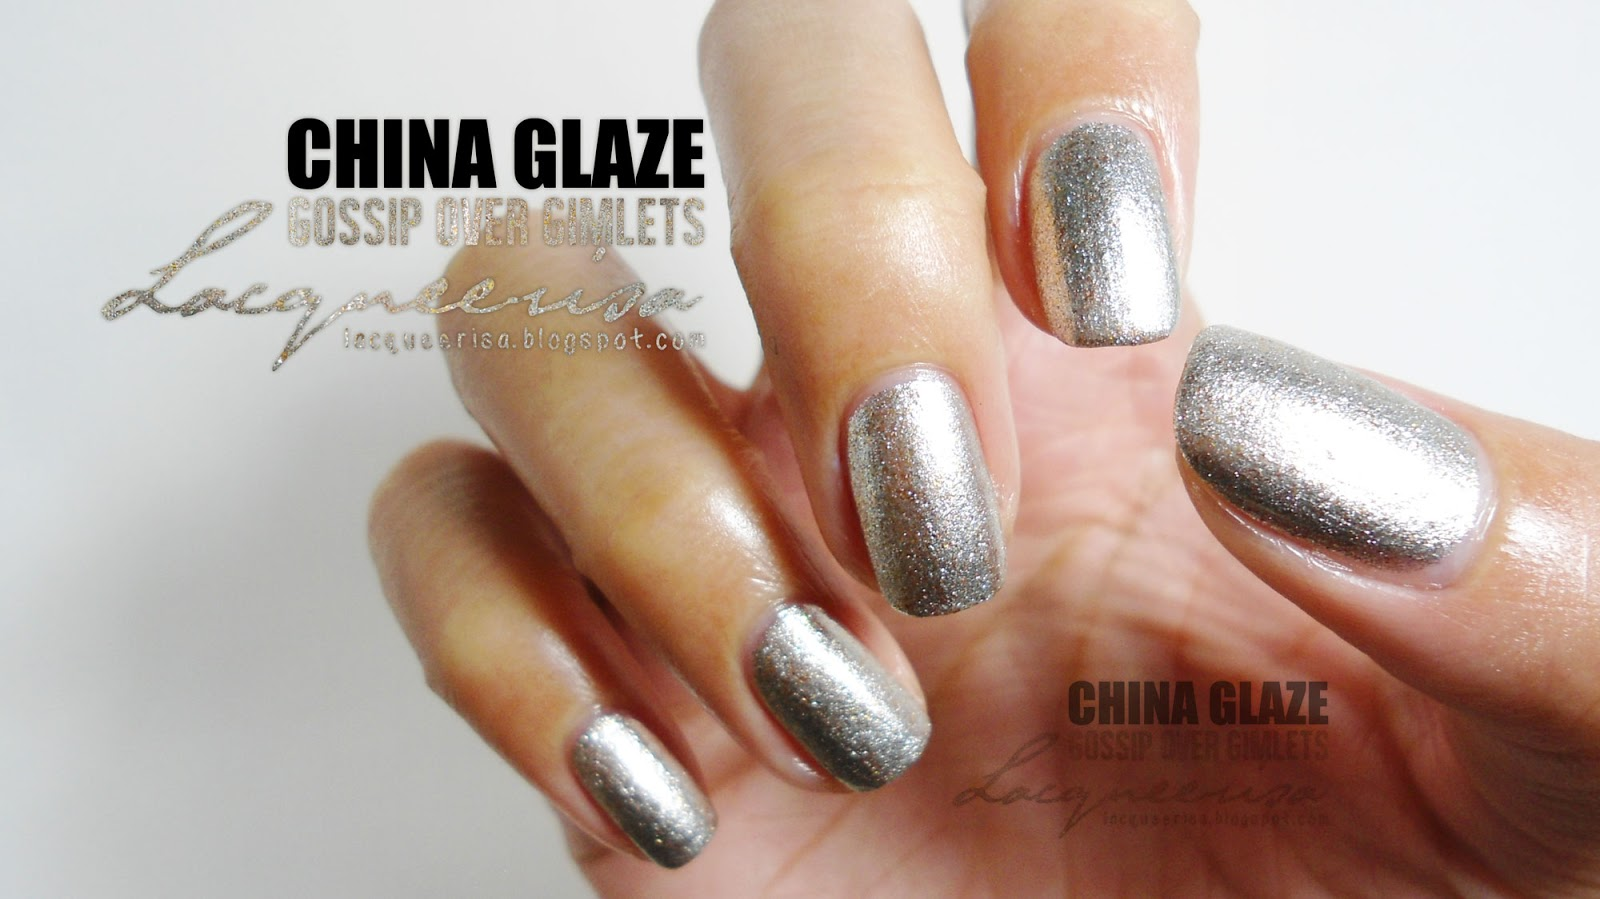 Lacqueerisa: China Glaze Gossip Over Gimlets